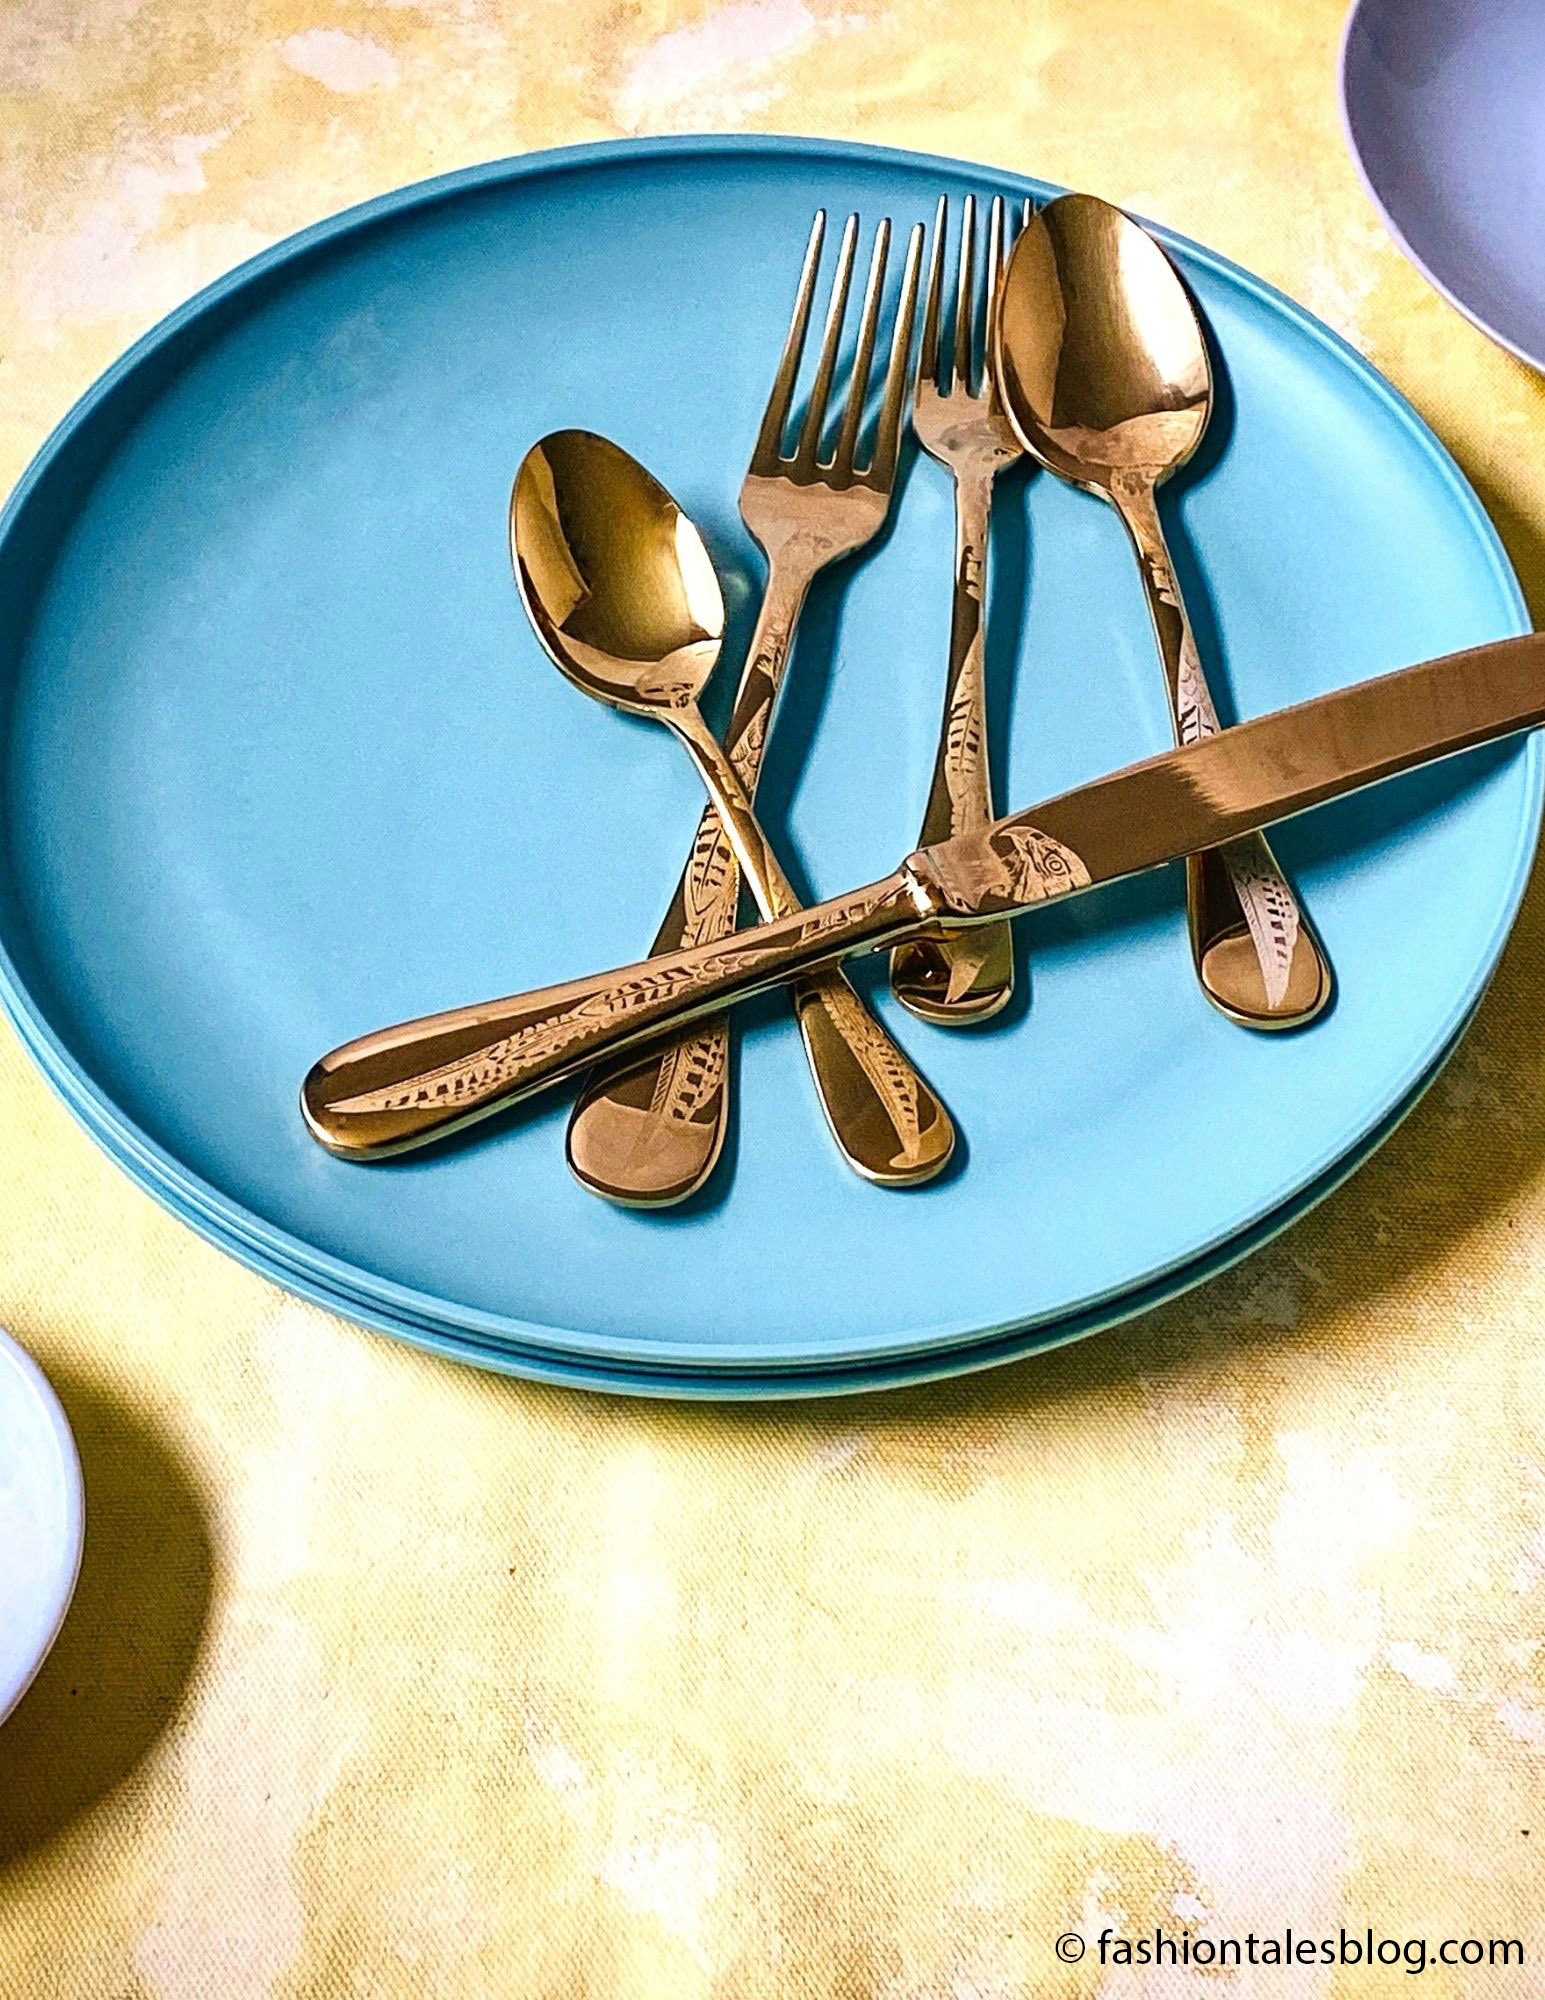 GOLD CUTLERY ON A PLATE